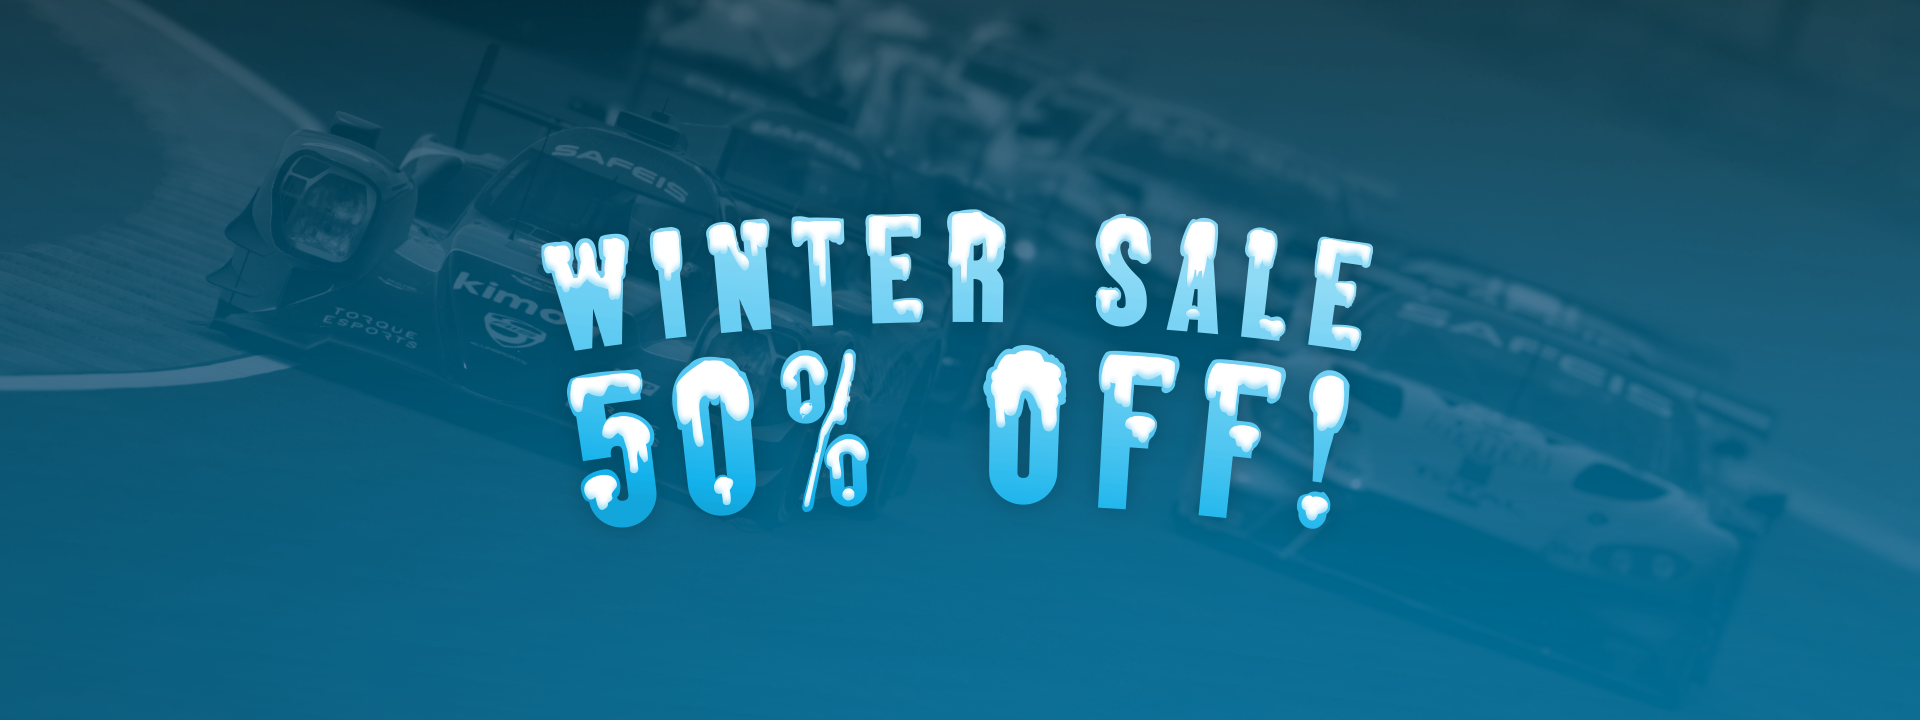 social_rf2_2020_winter-sale.png